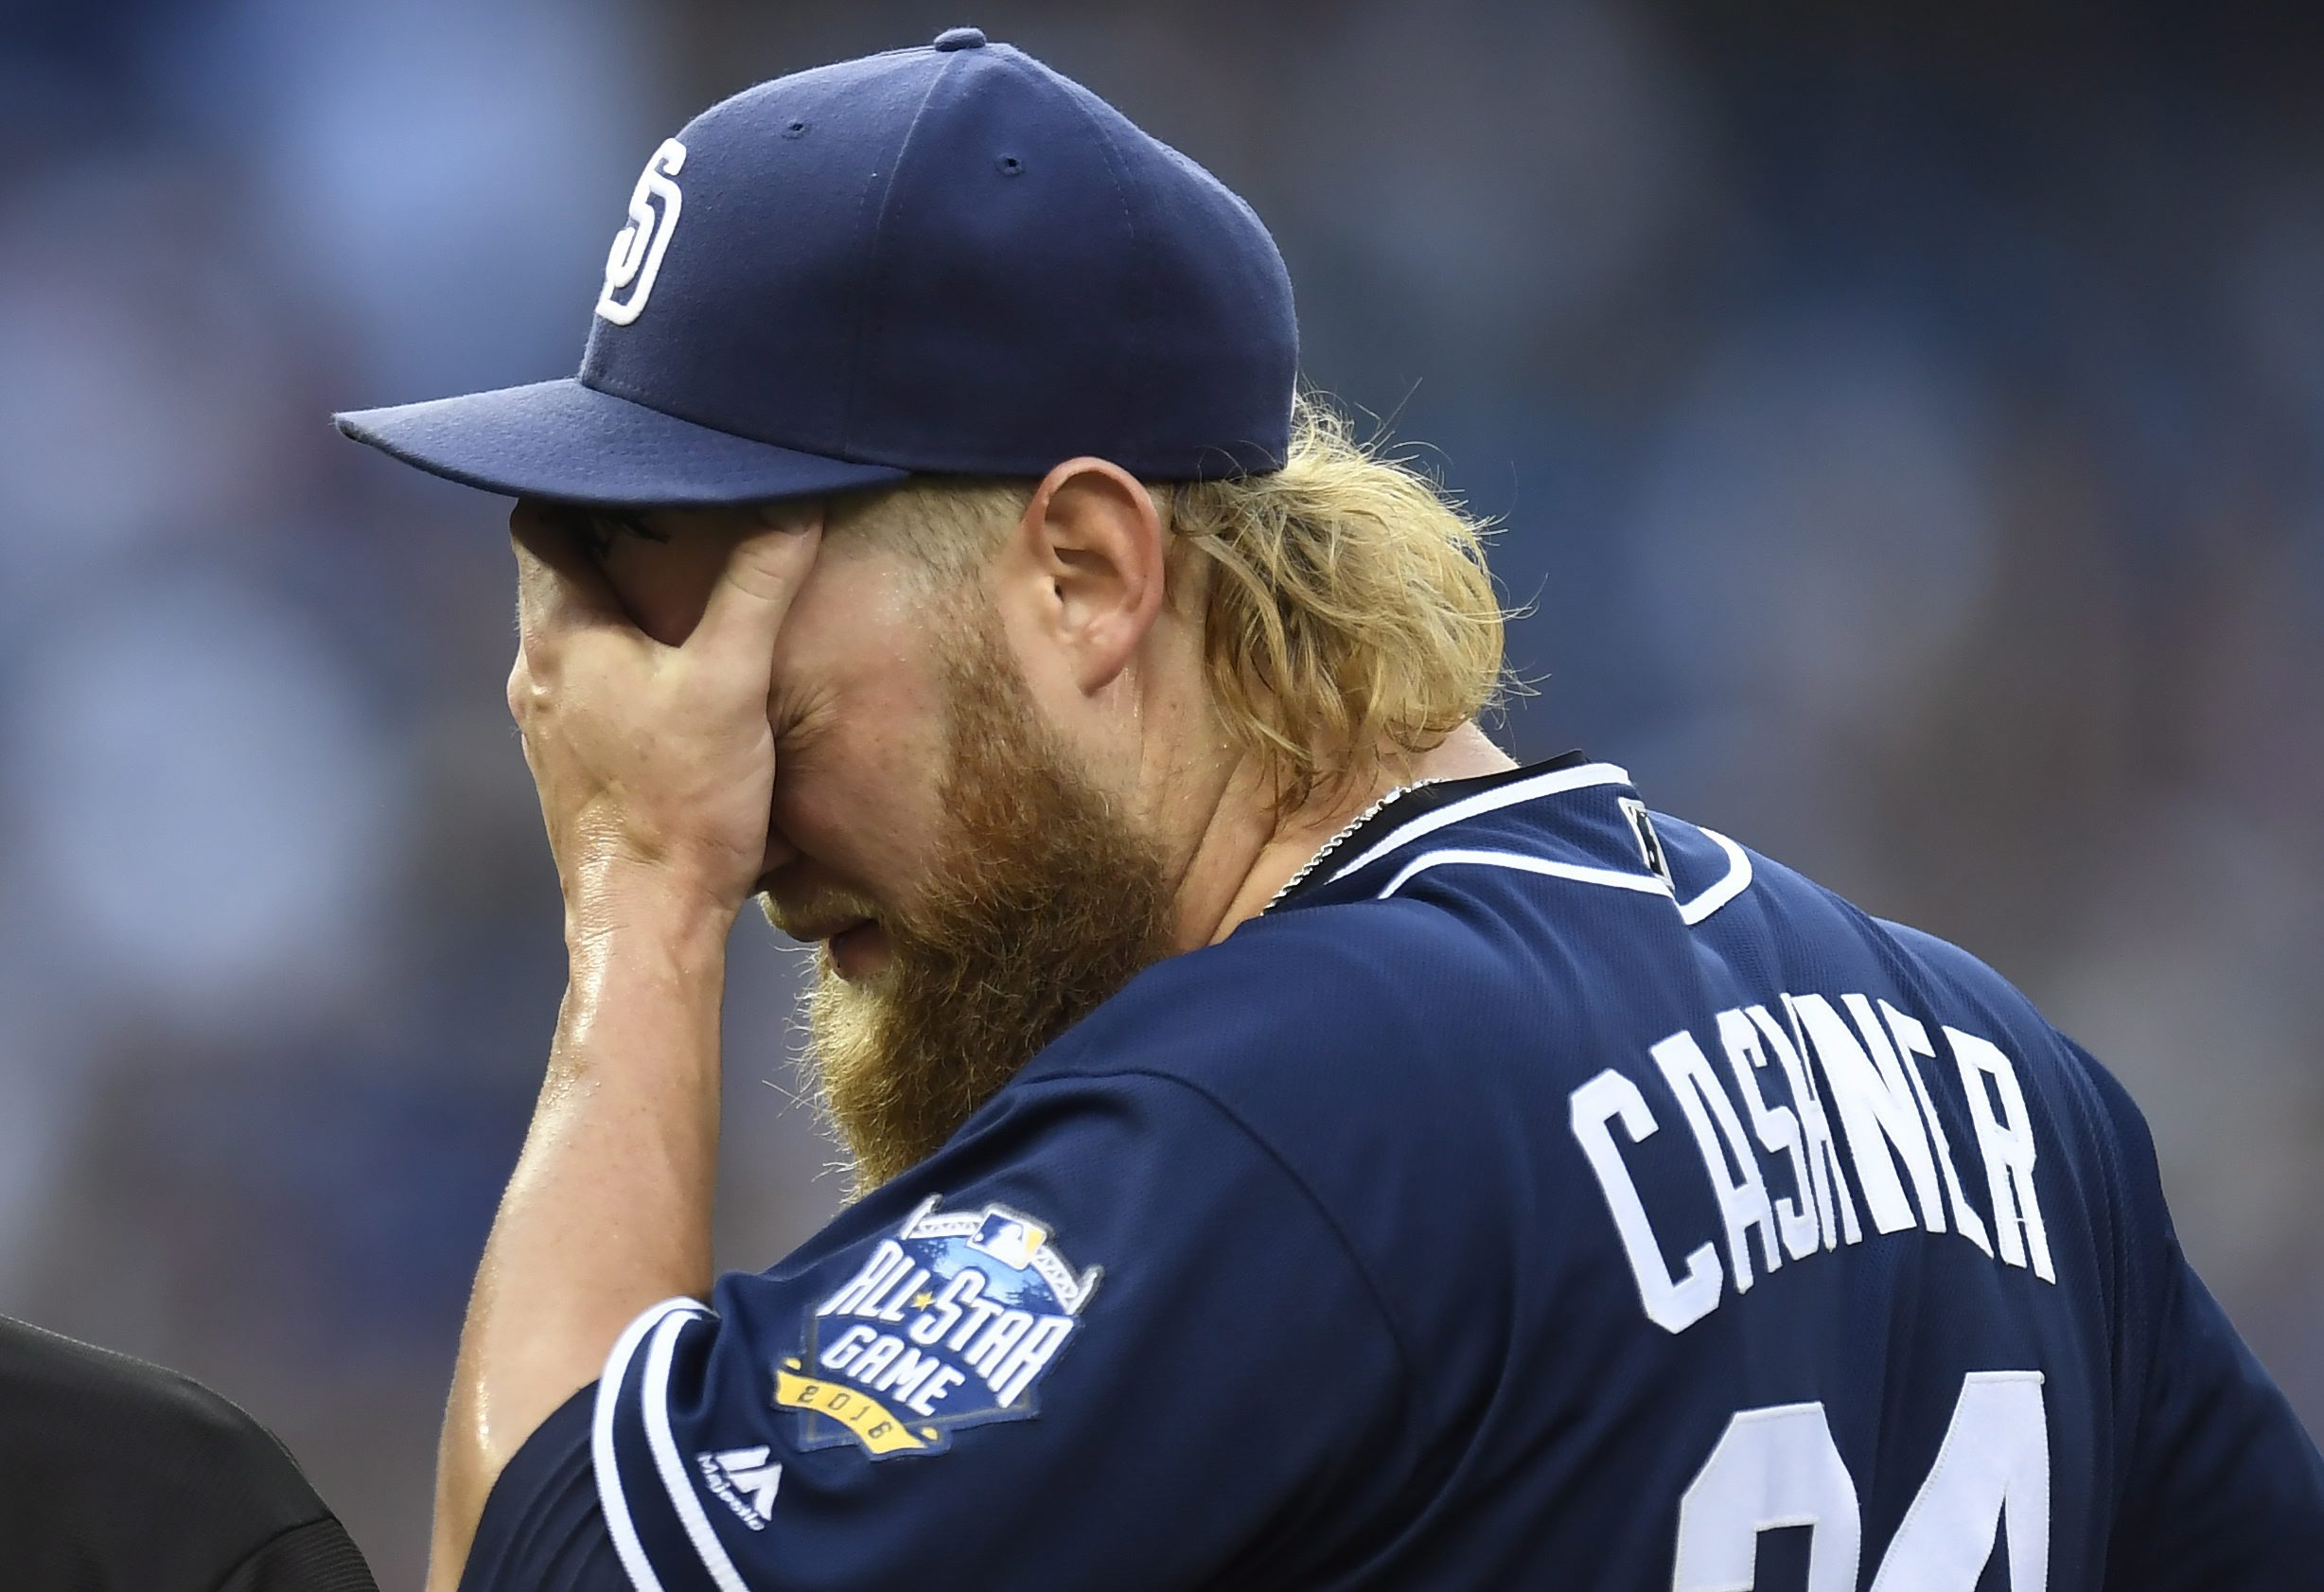 San Diego Padres starting pitcher Andrew Cashner reacts on the mound during the first inning of the team's baseball game against the Toronto Blue Jays on Tuesday, July 26, 2016, in Toronto. (Frank Gunn/The Canadian Press via AP)